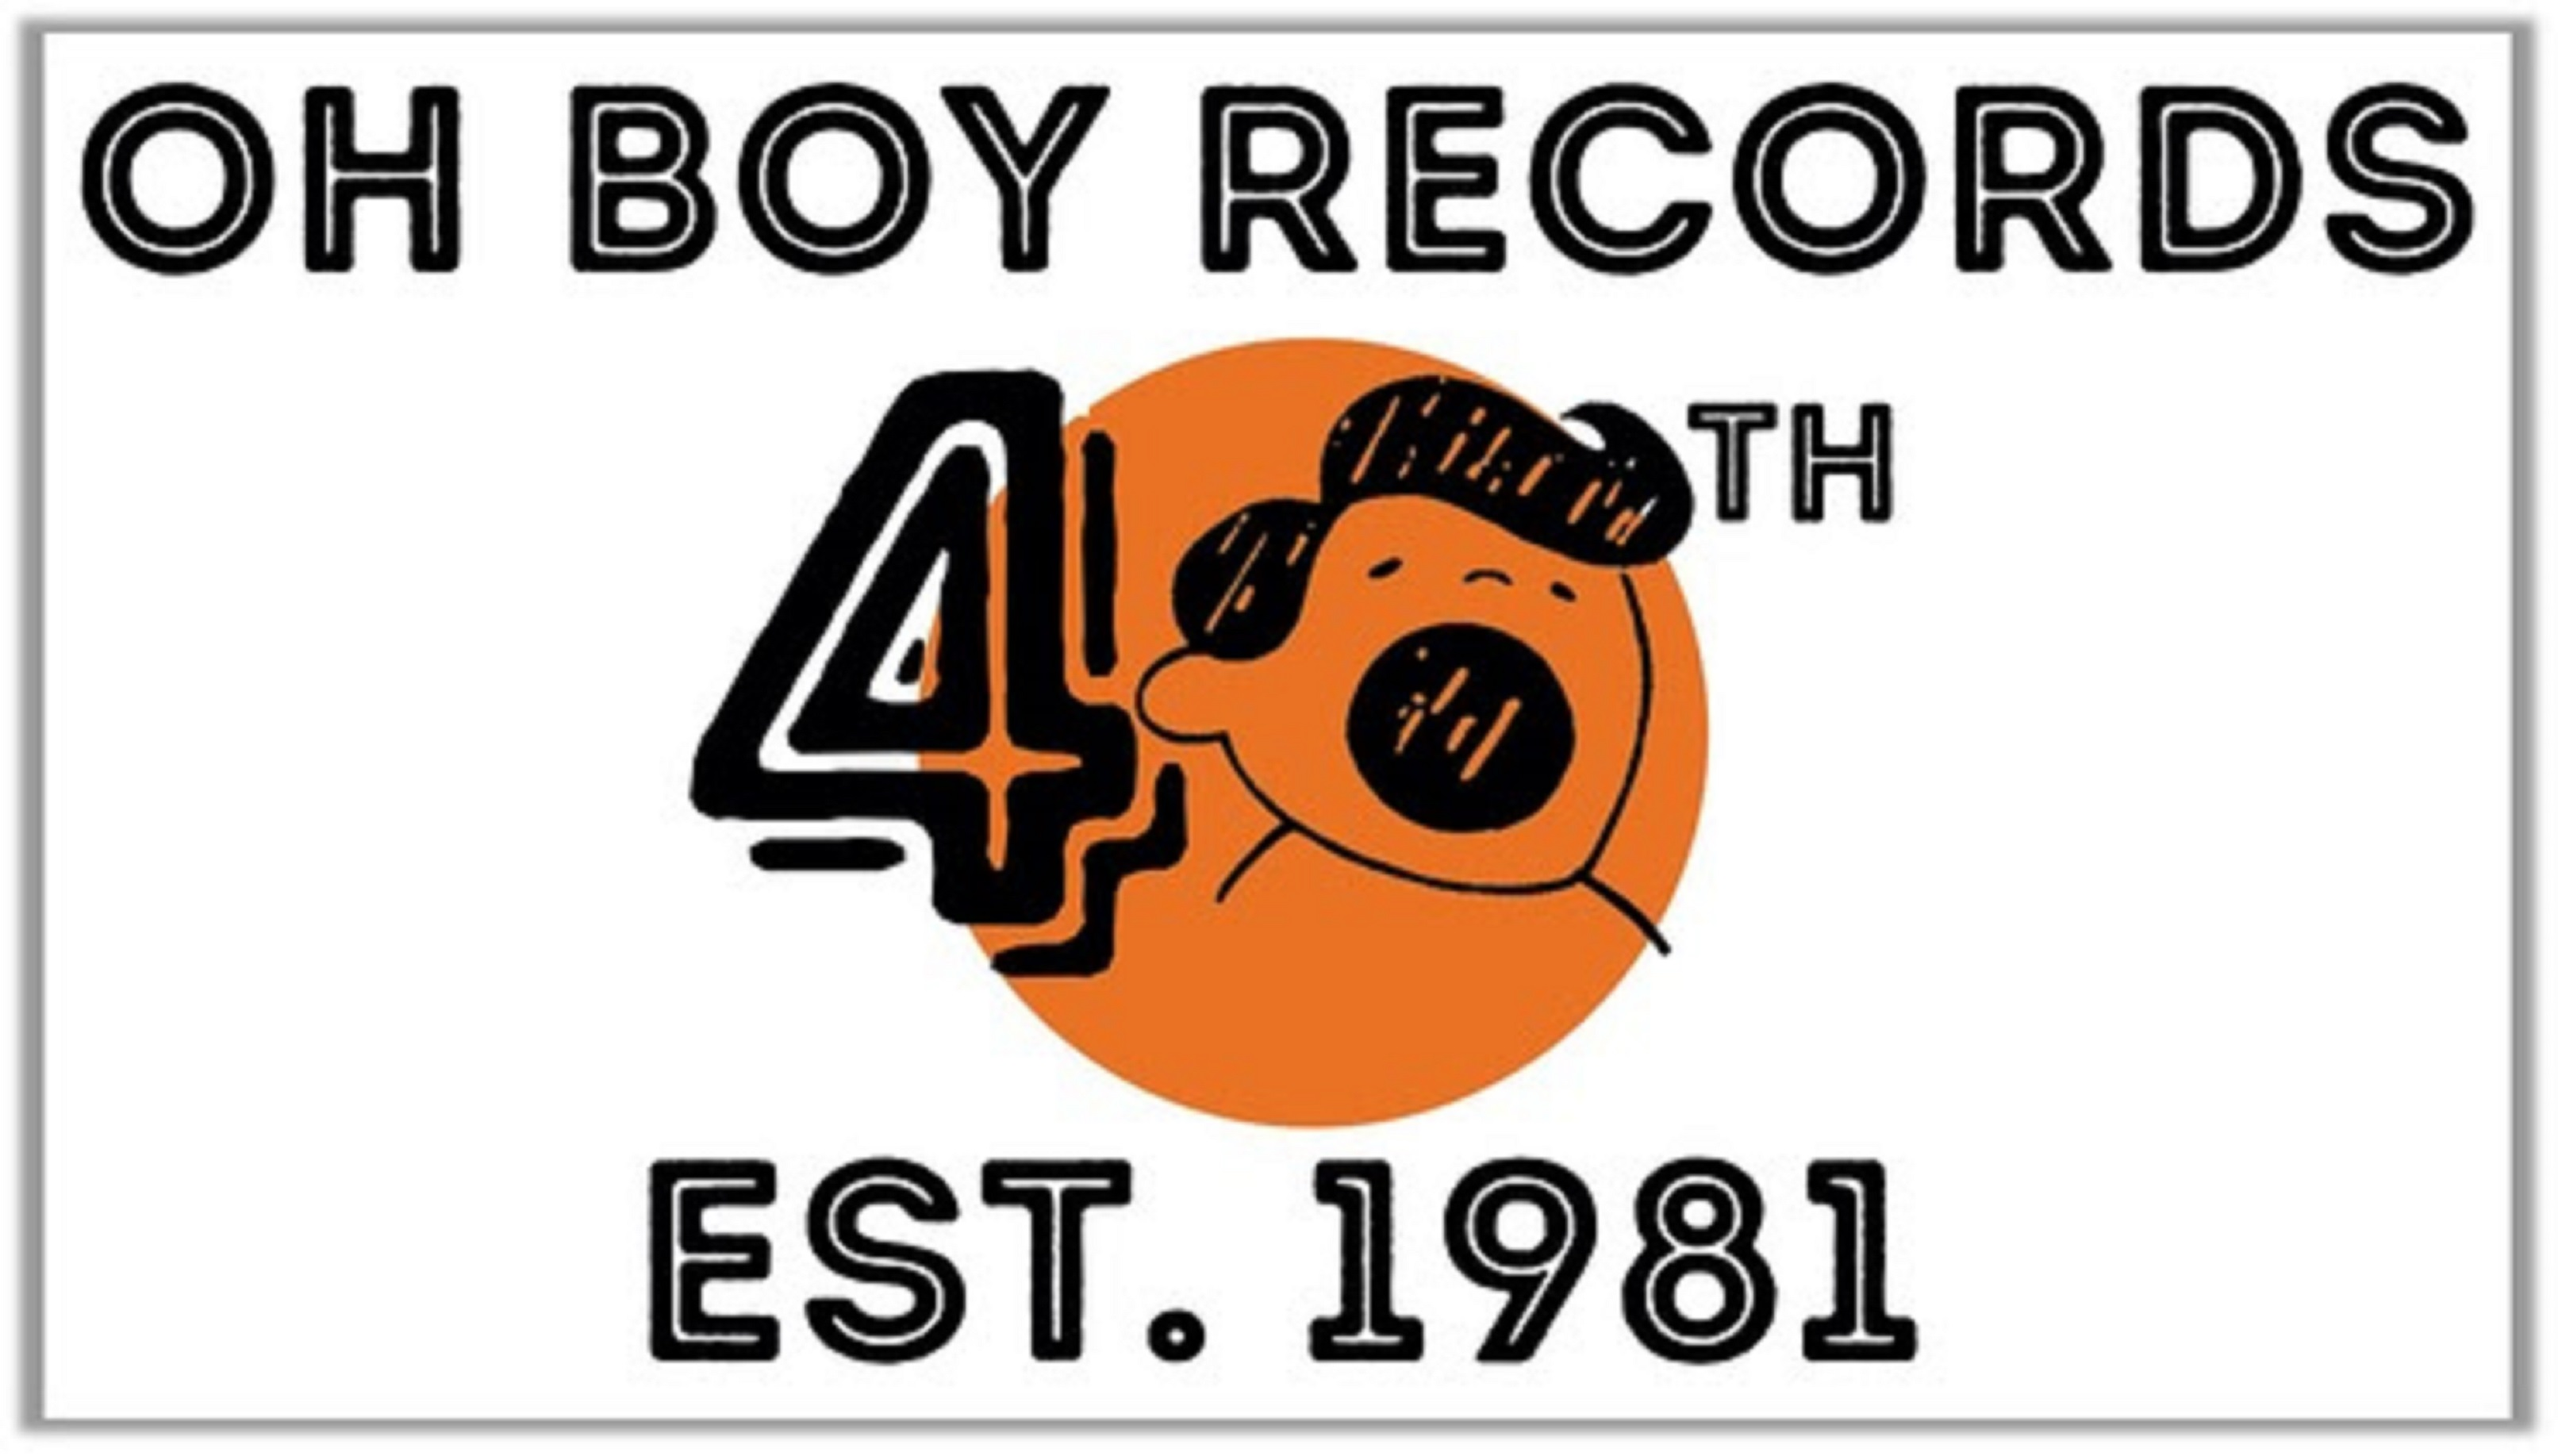 Oh Boy Records celebrates 40 years